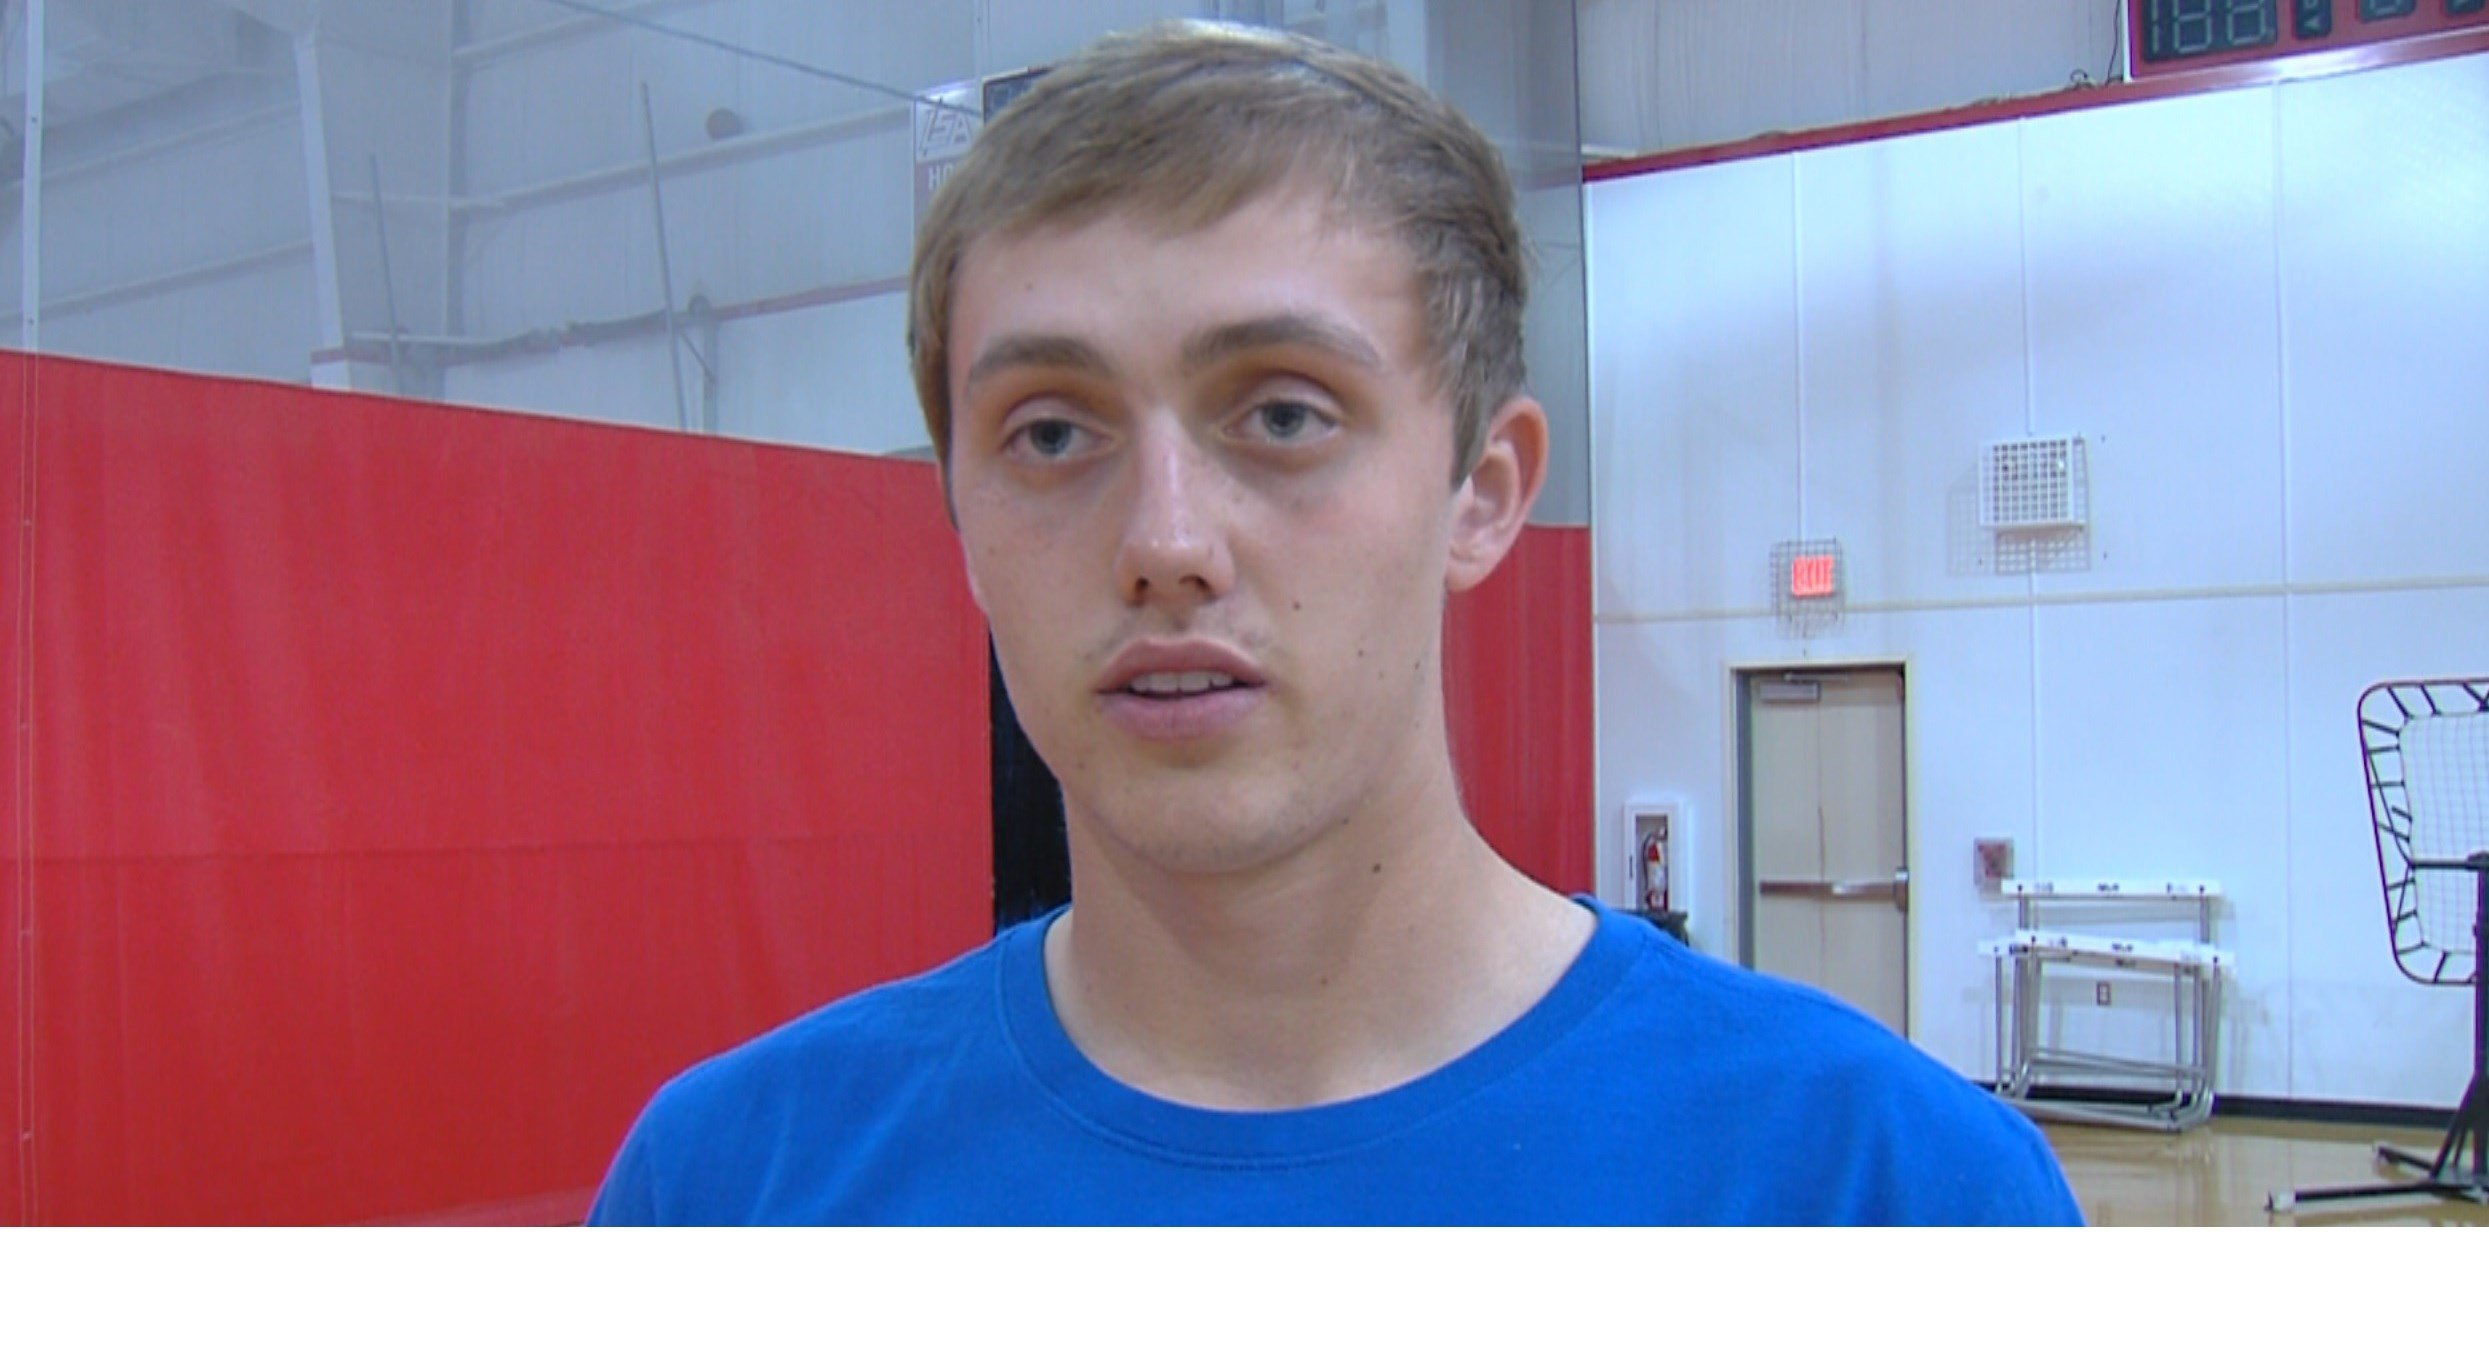 LSA's Parker Nichols said he will play either the 1 or 2 at Millikin, but his specific role has yet to be determined.